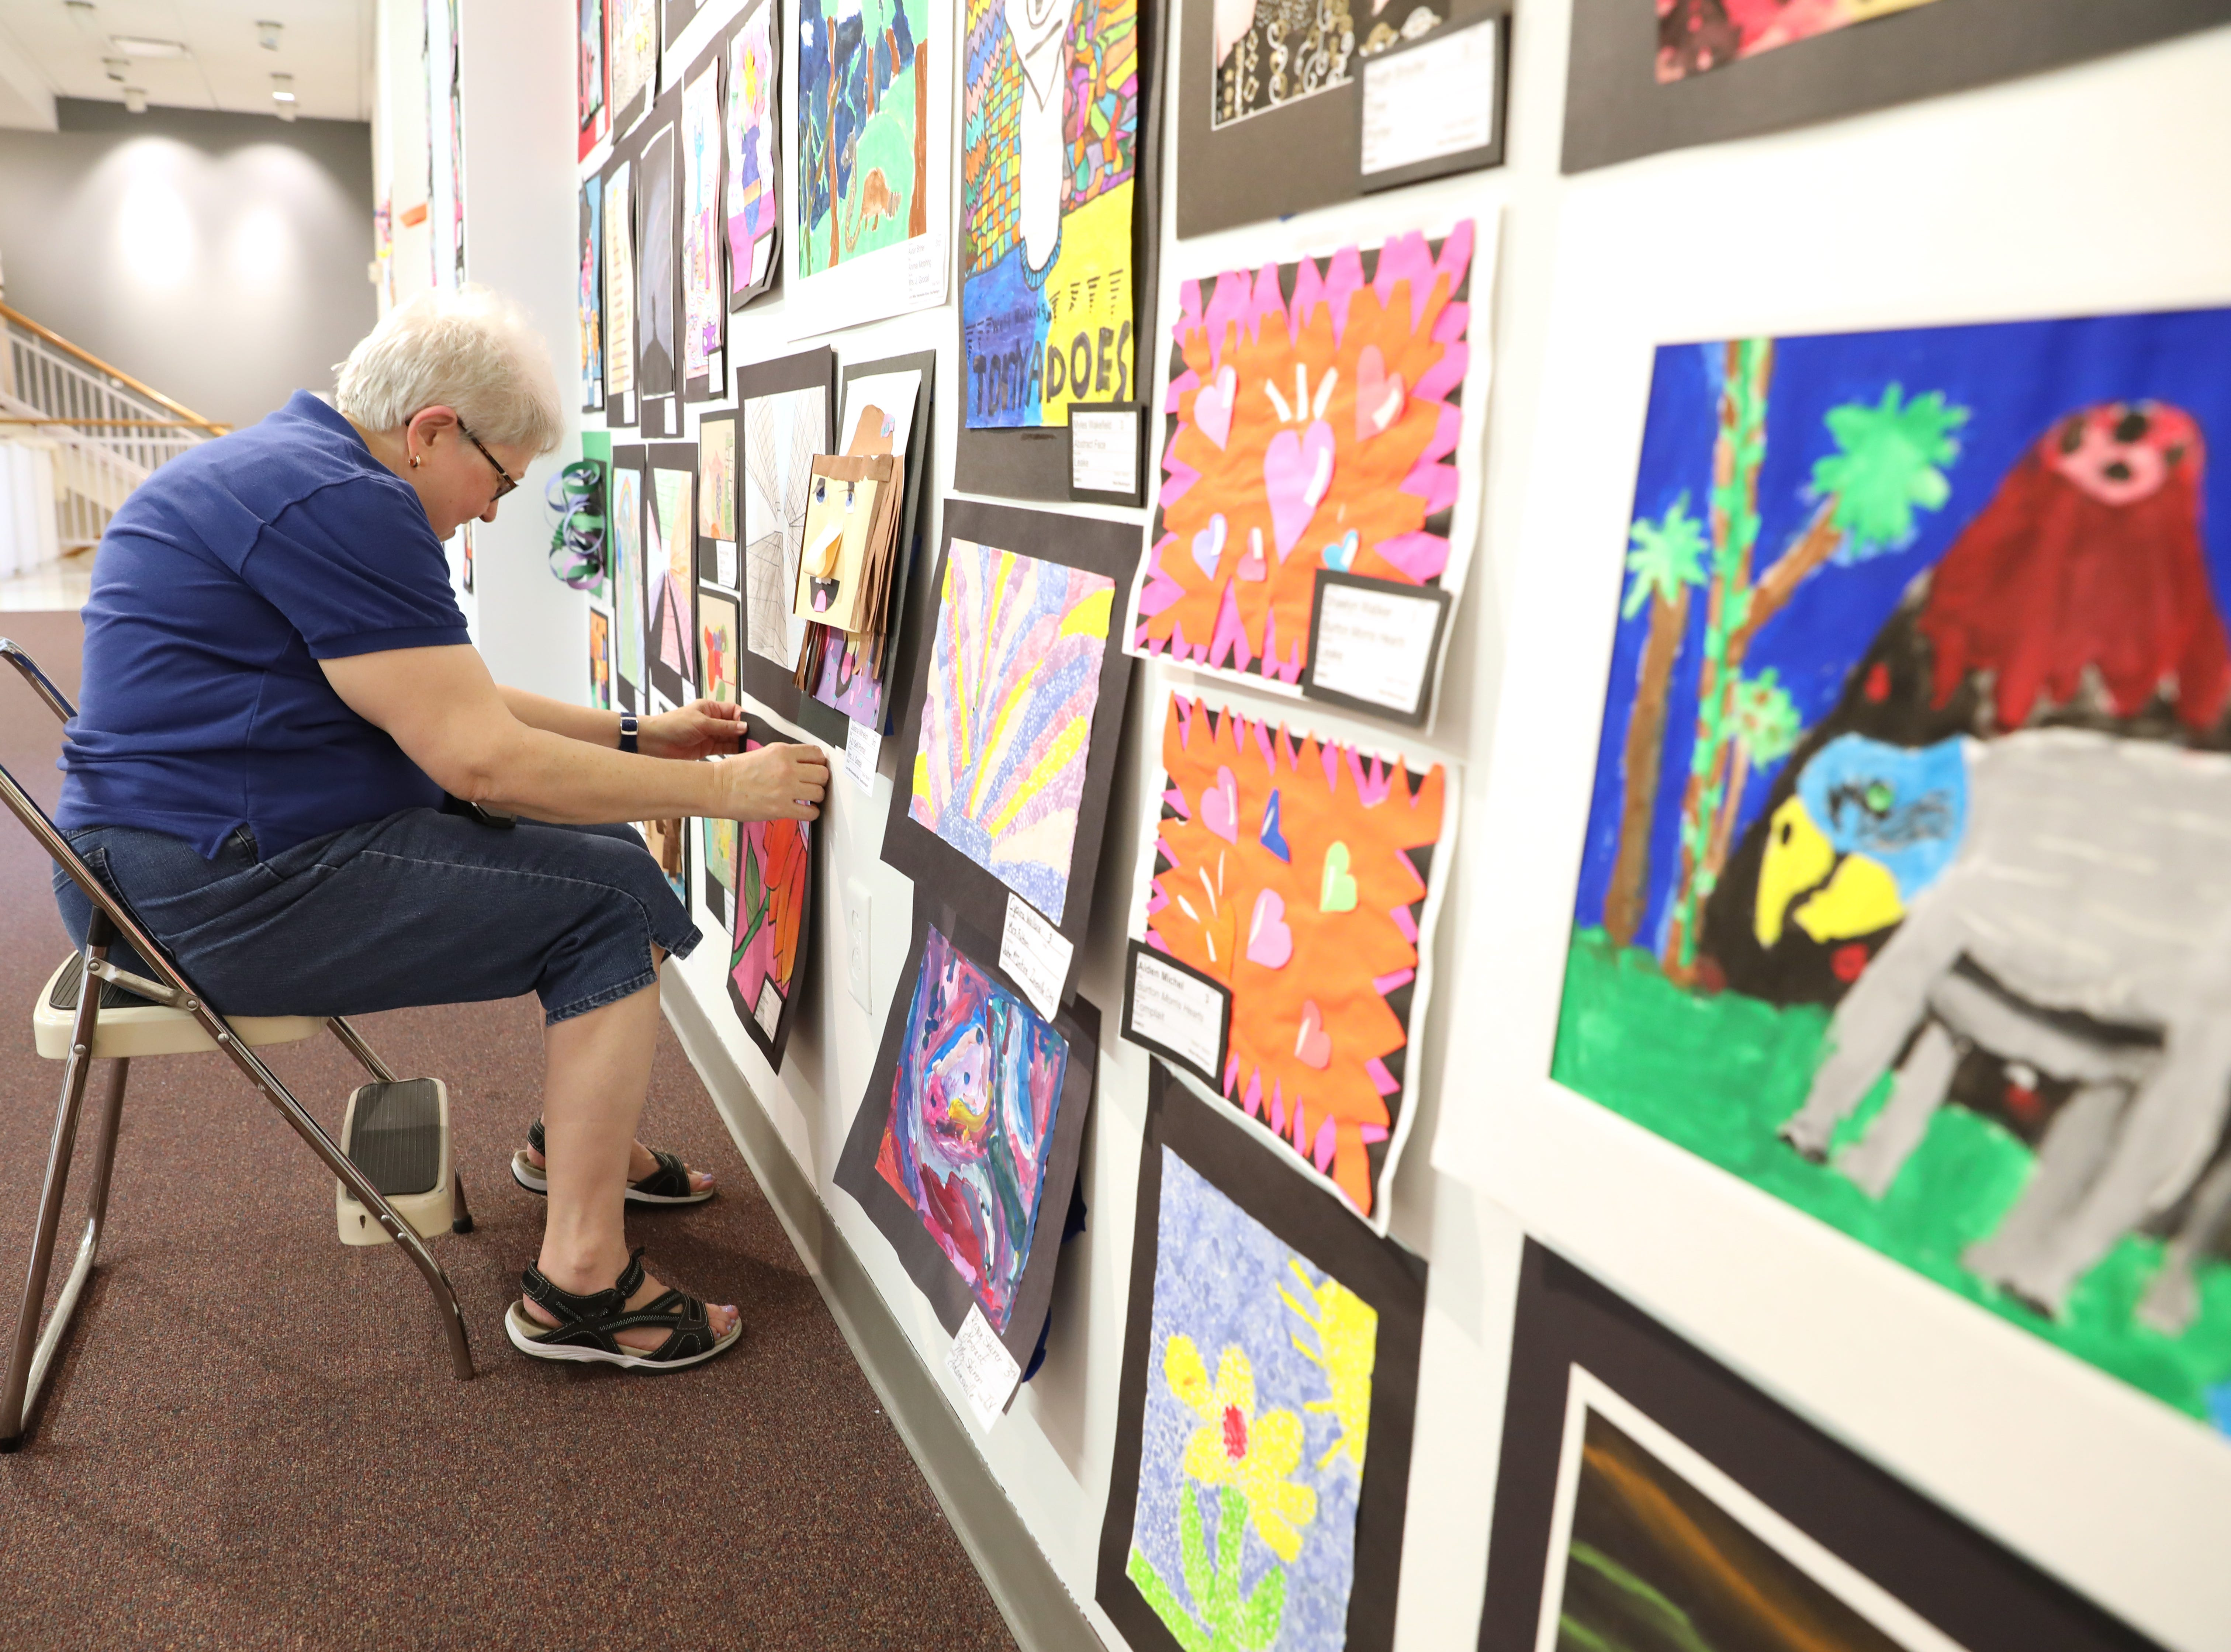 Brooke Anderson of the AAUW hangs art for the Muskingum County K-12 Student Art Exhibition at the Zanesville Museum of Art.